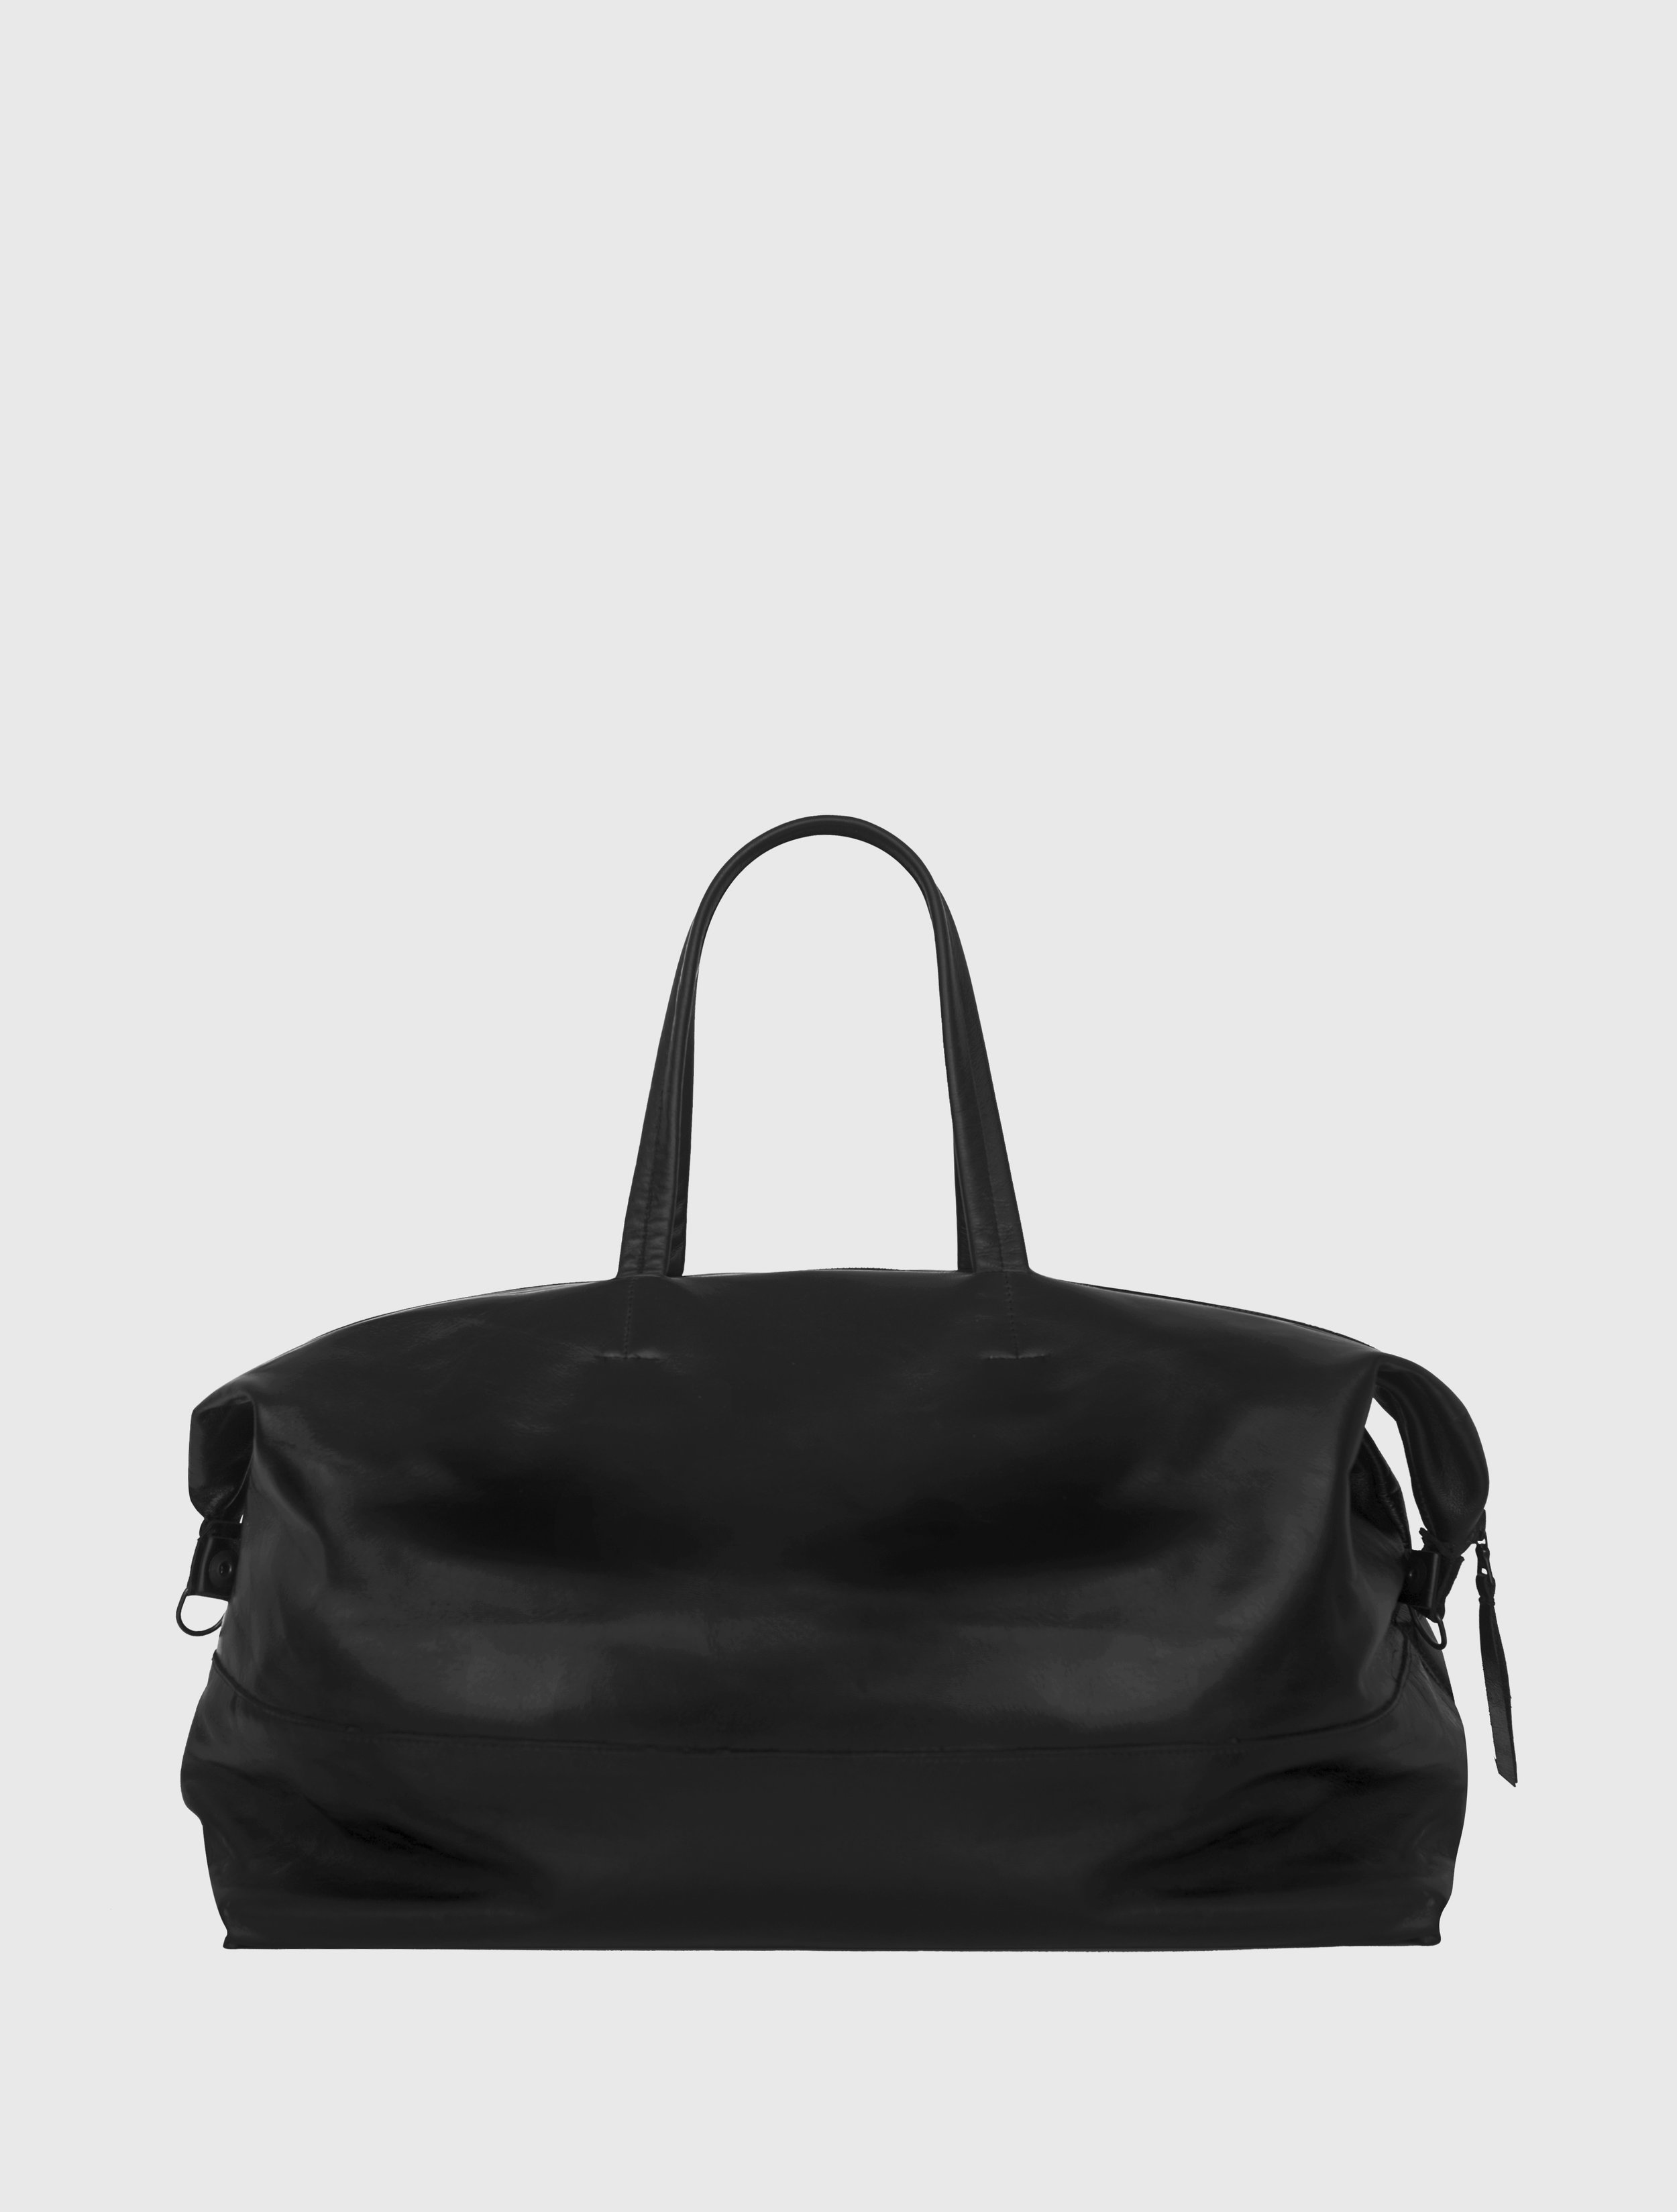 2015-16 HOLDALL - BLACK BACK.jpg